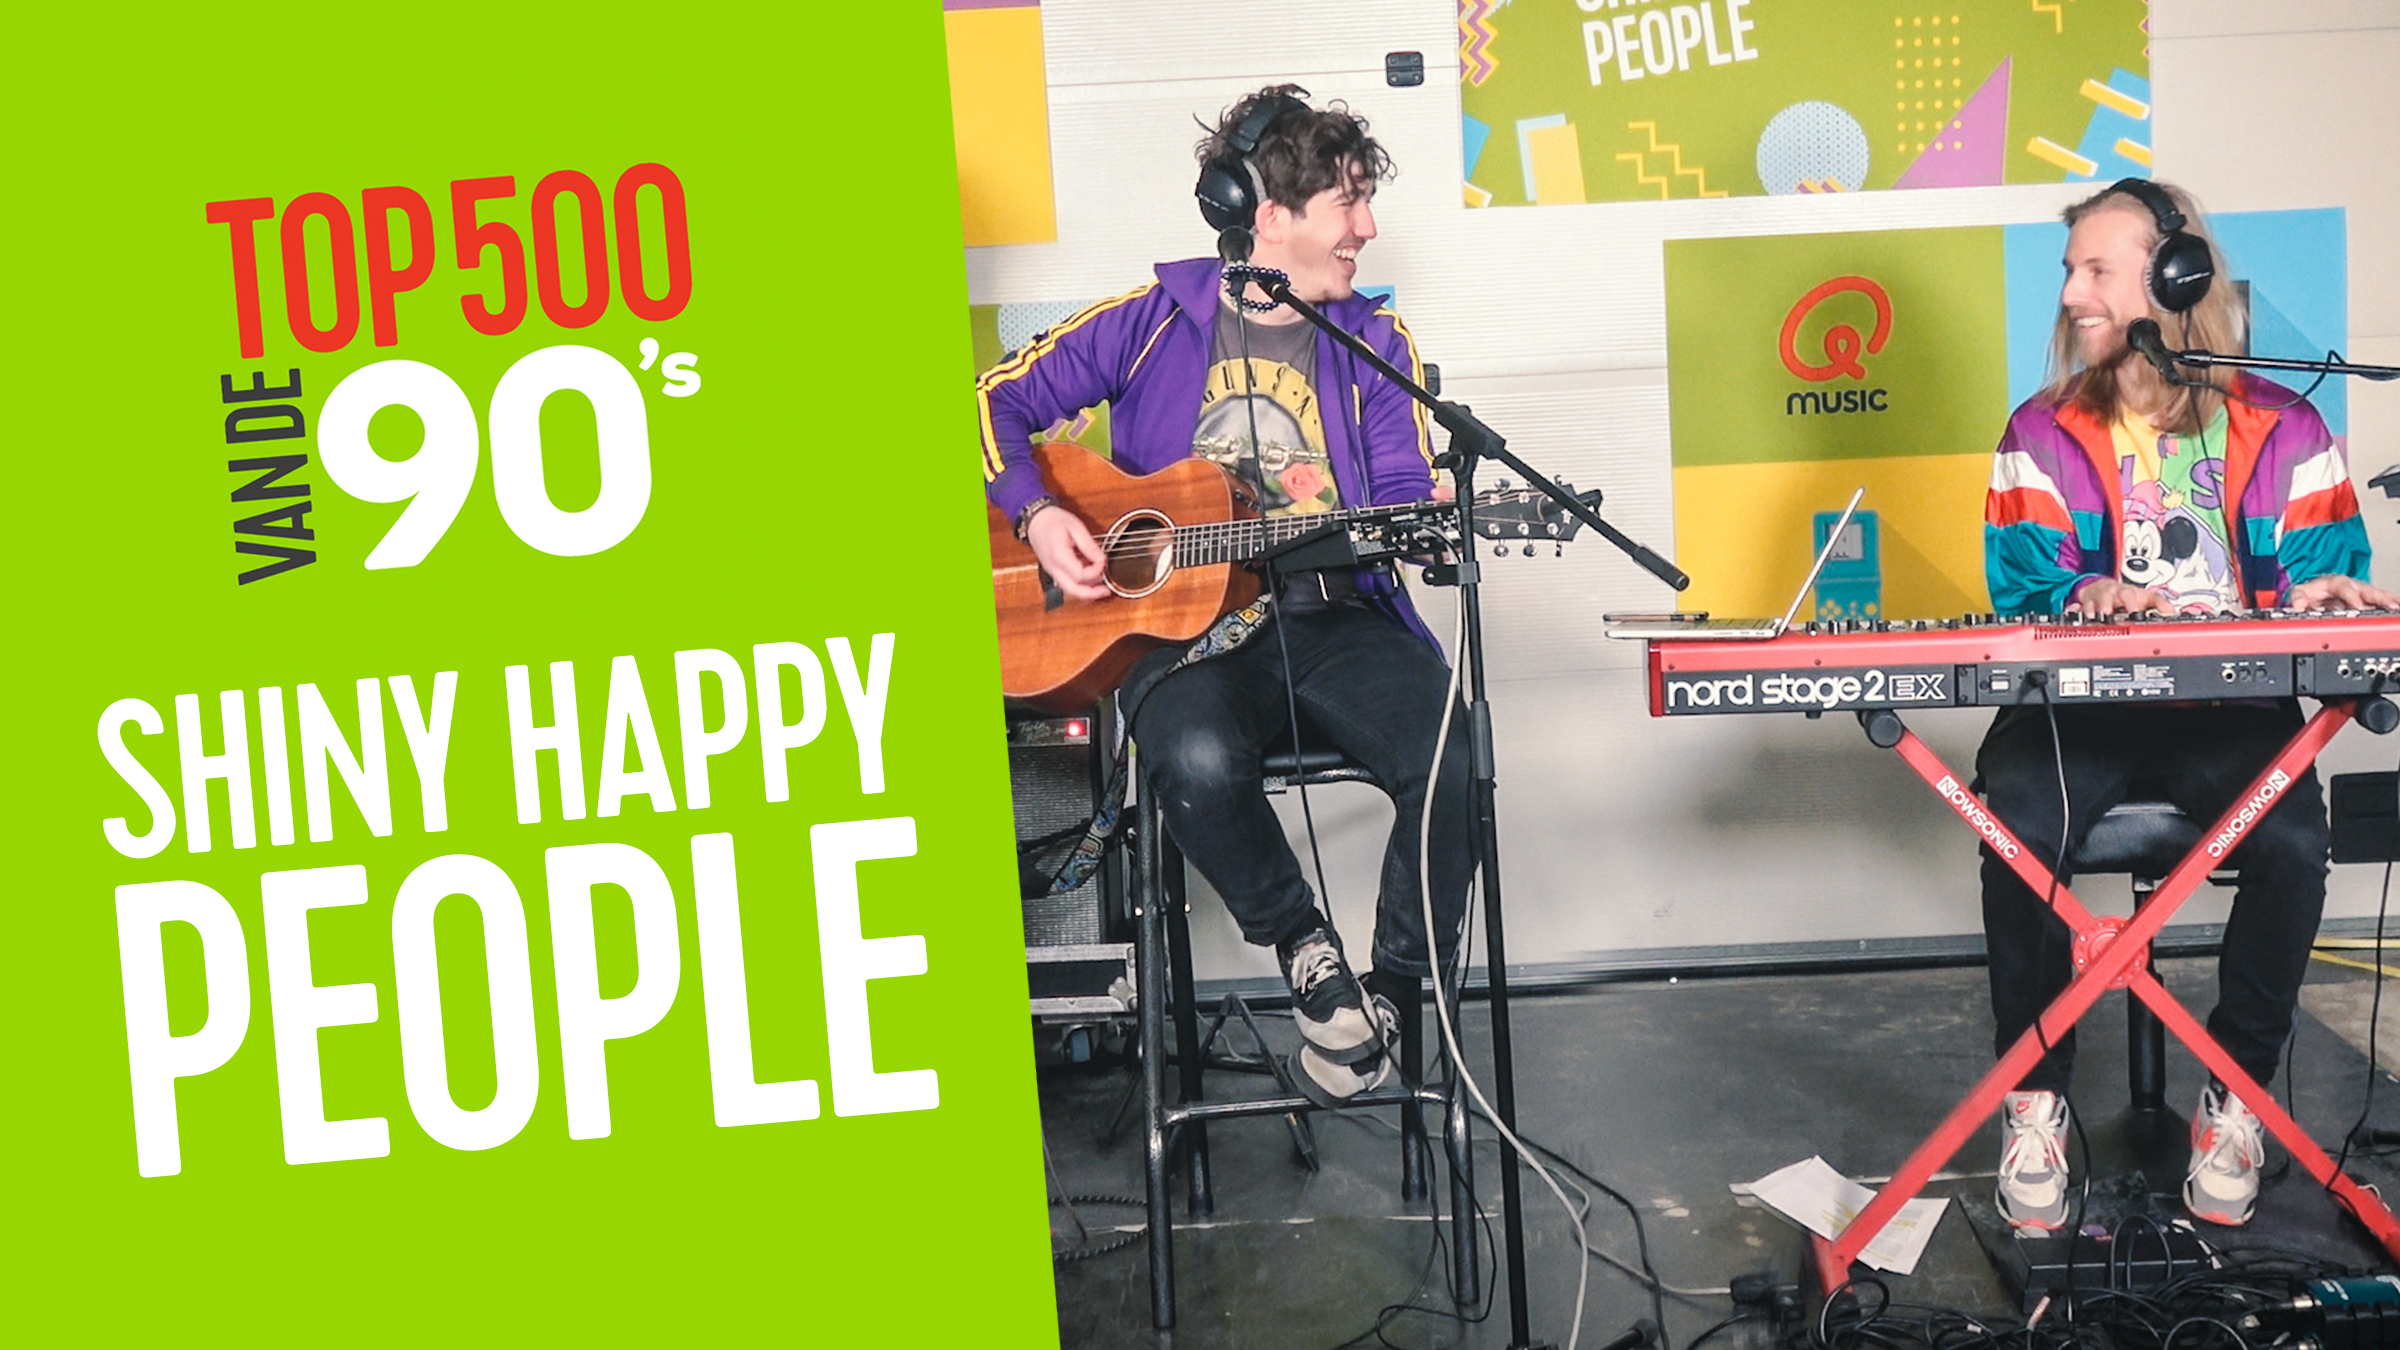 Shiny happy people   yt thumb